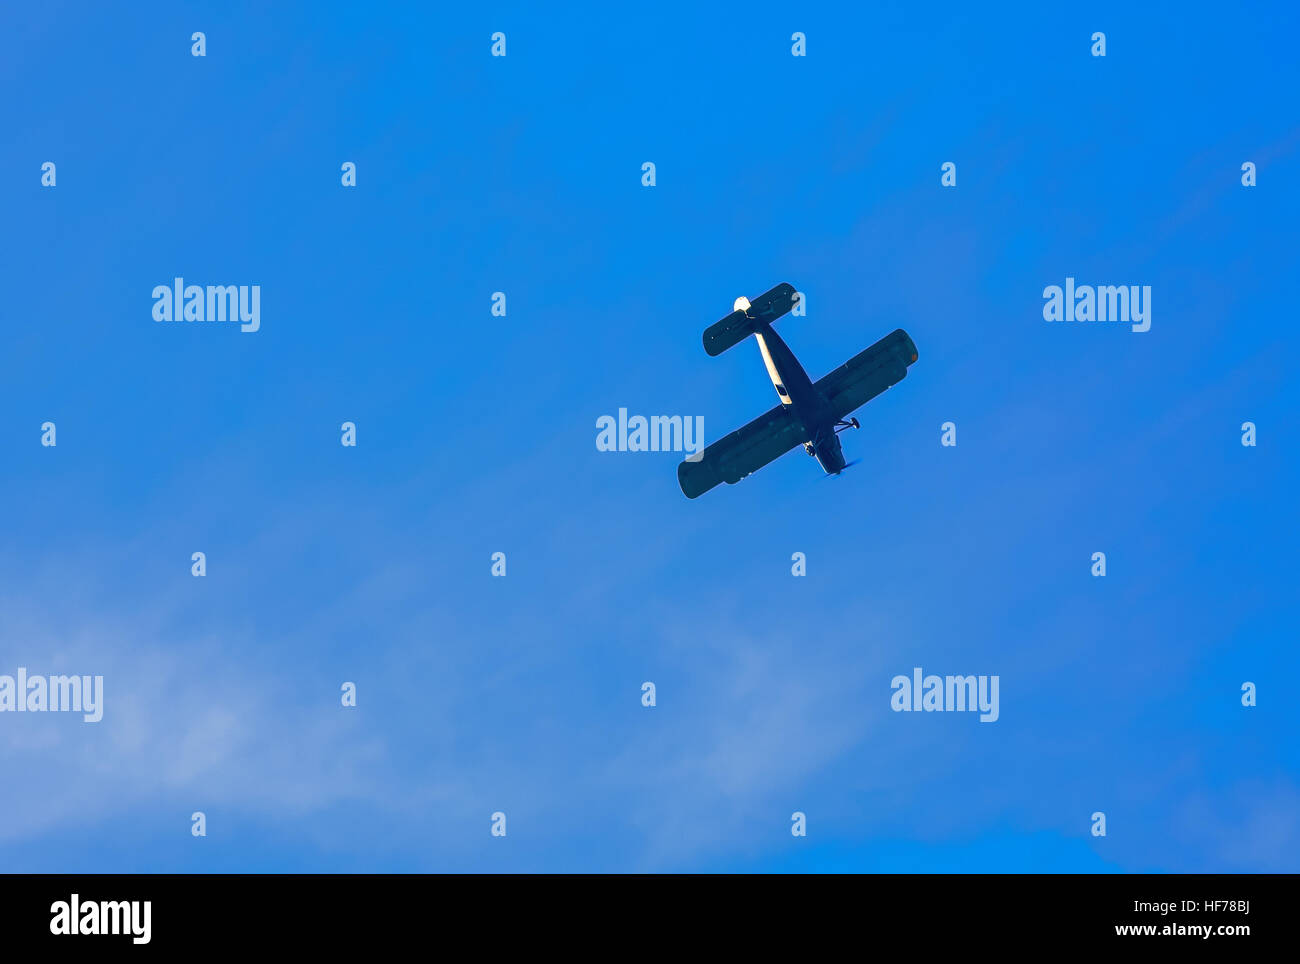 Old civil plane AN2 airplane - Stock Image